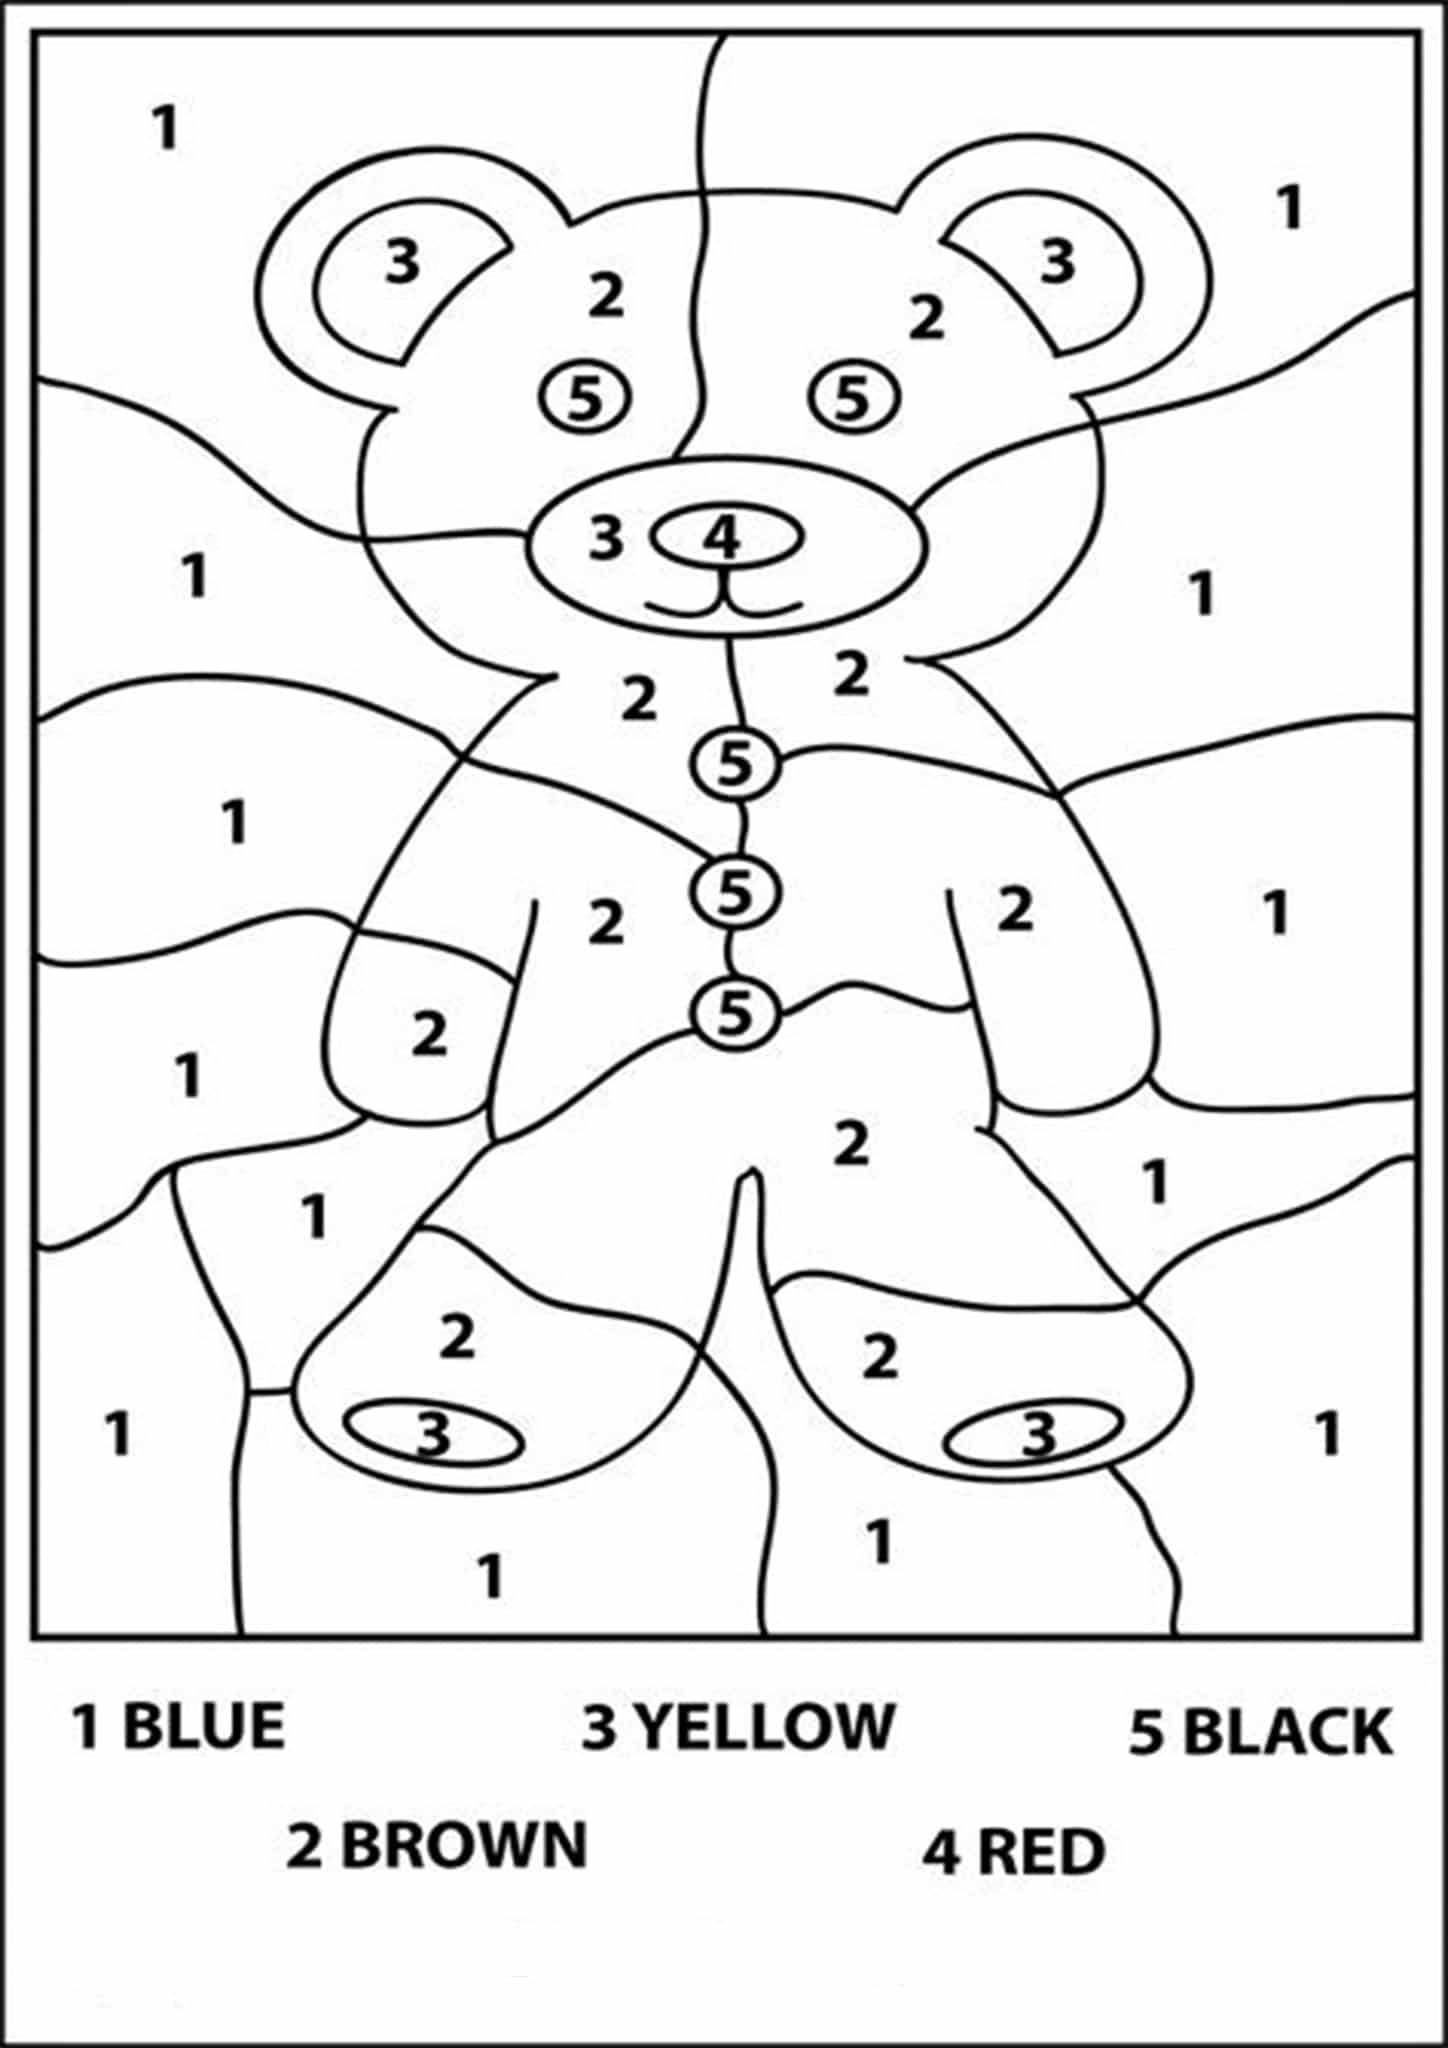 coloring number for preschool color by number coloring pages to download and print for free preschool number coloring for